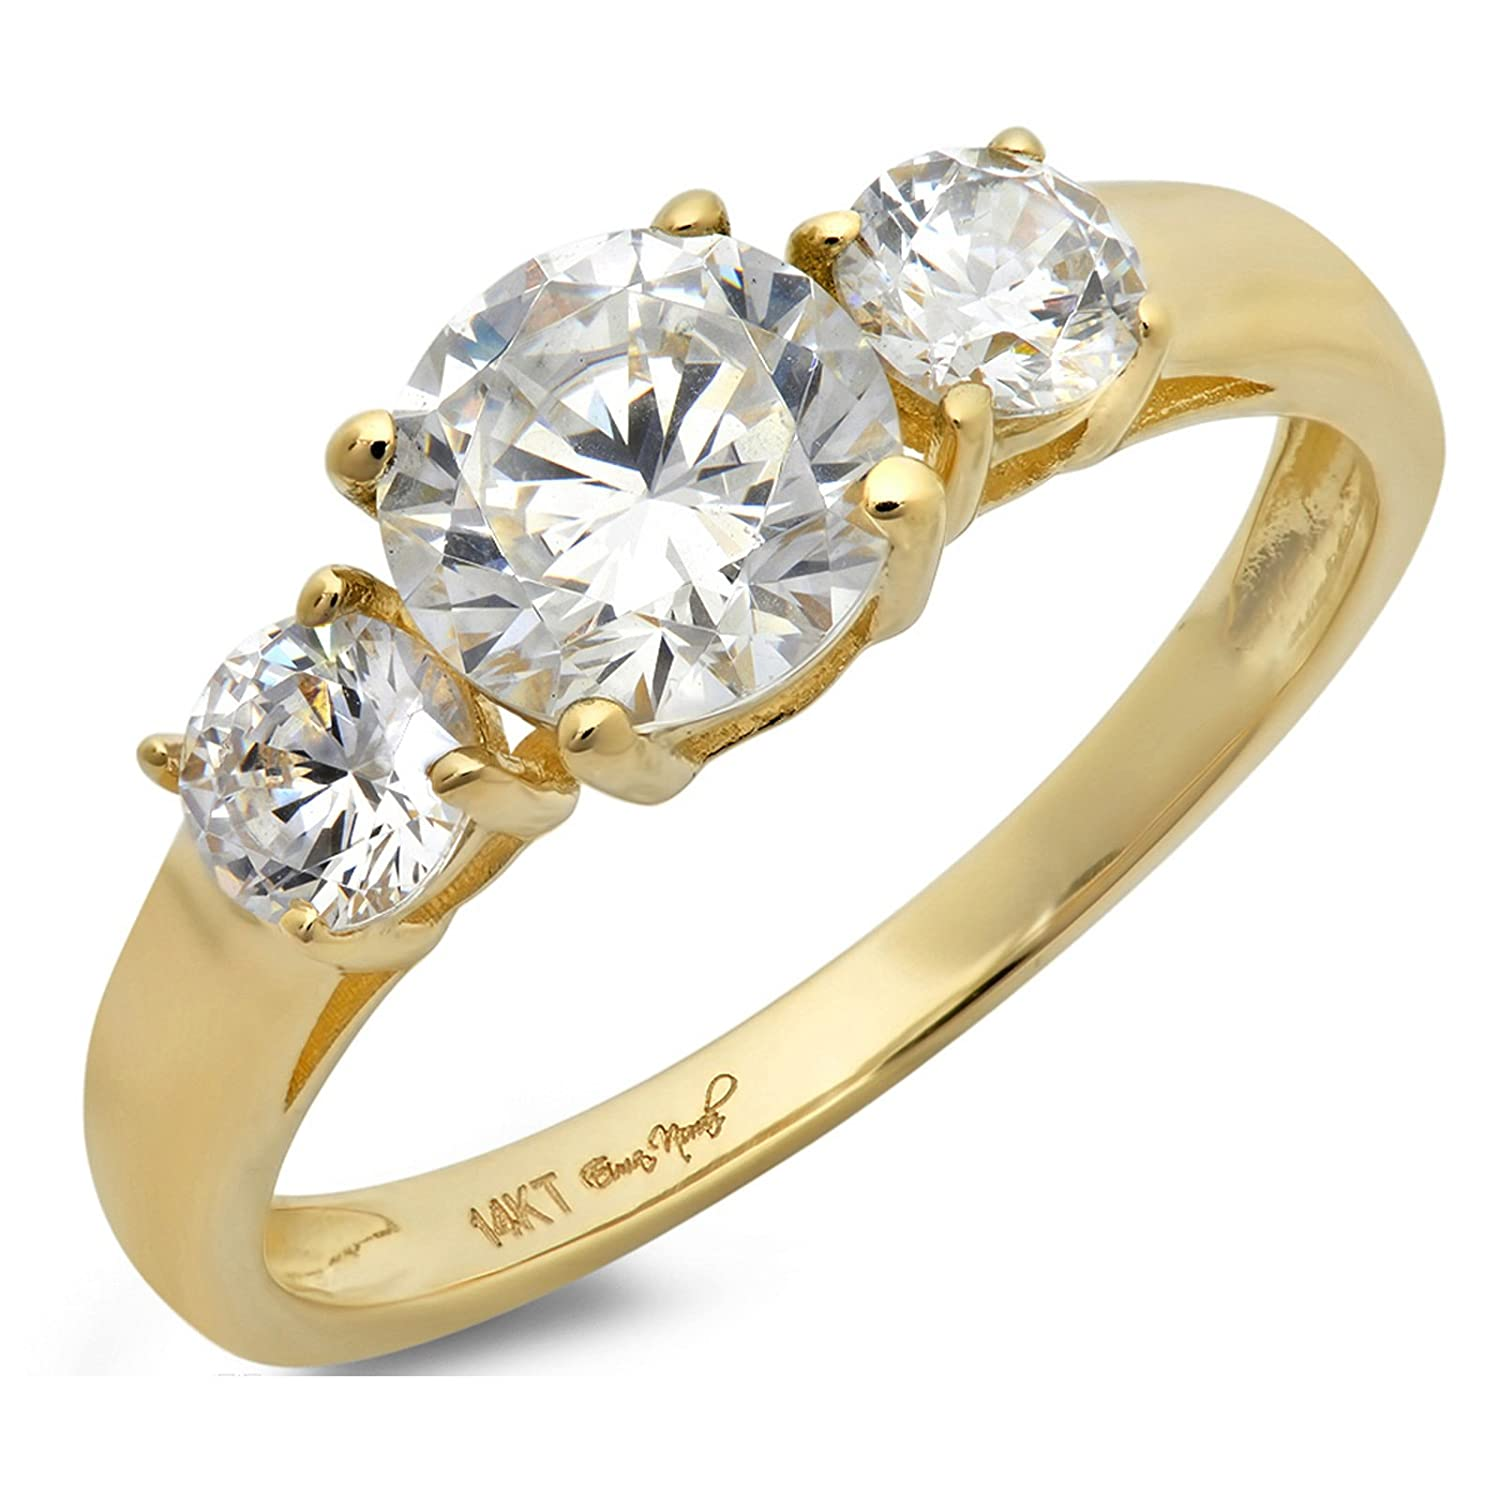 makes s best what rings tacori wedding engagement who the details sparta jewellery special